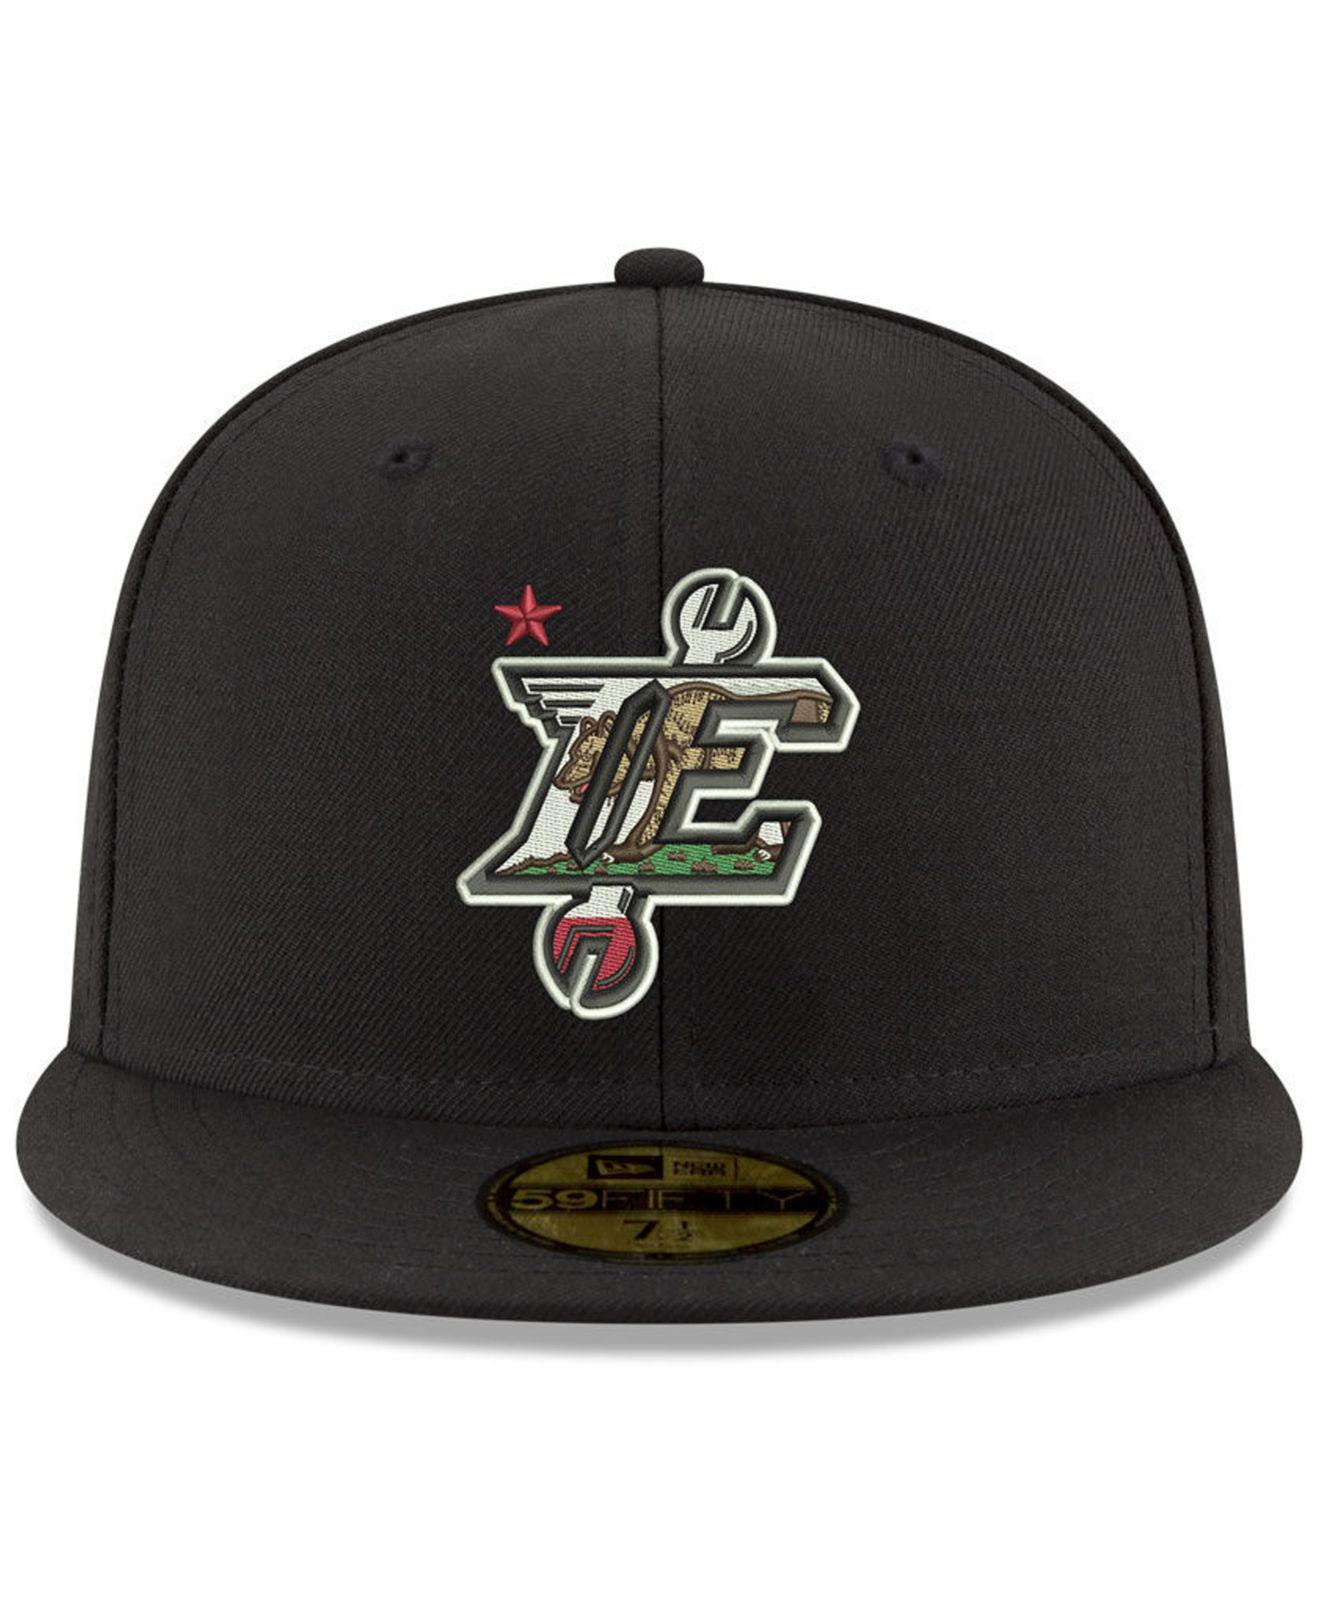 af6831a39b3 Lyst - KTZ Inland Empire 66ers Ac 59fifty Fitted Cap in Black for Men